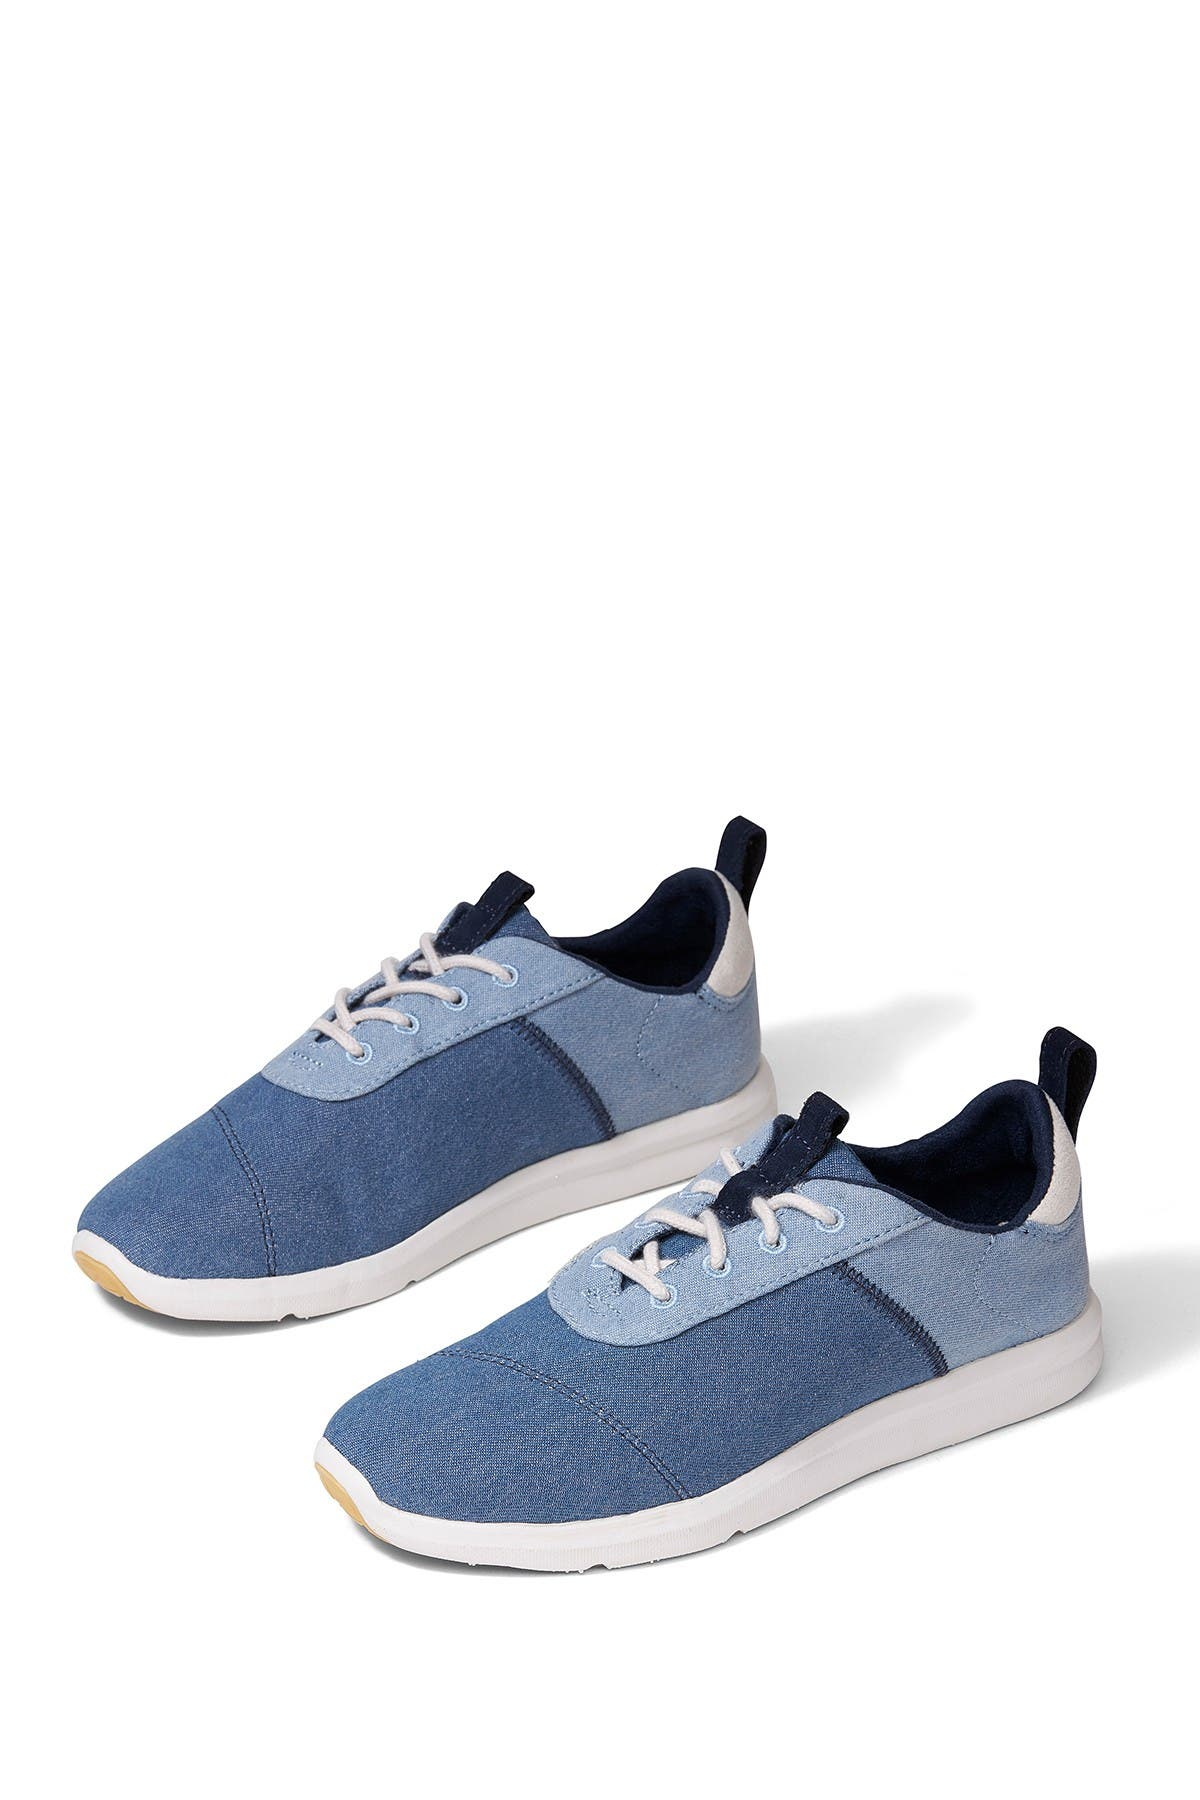 Image of TOMS Cabrillo Denim Sneaker